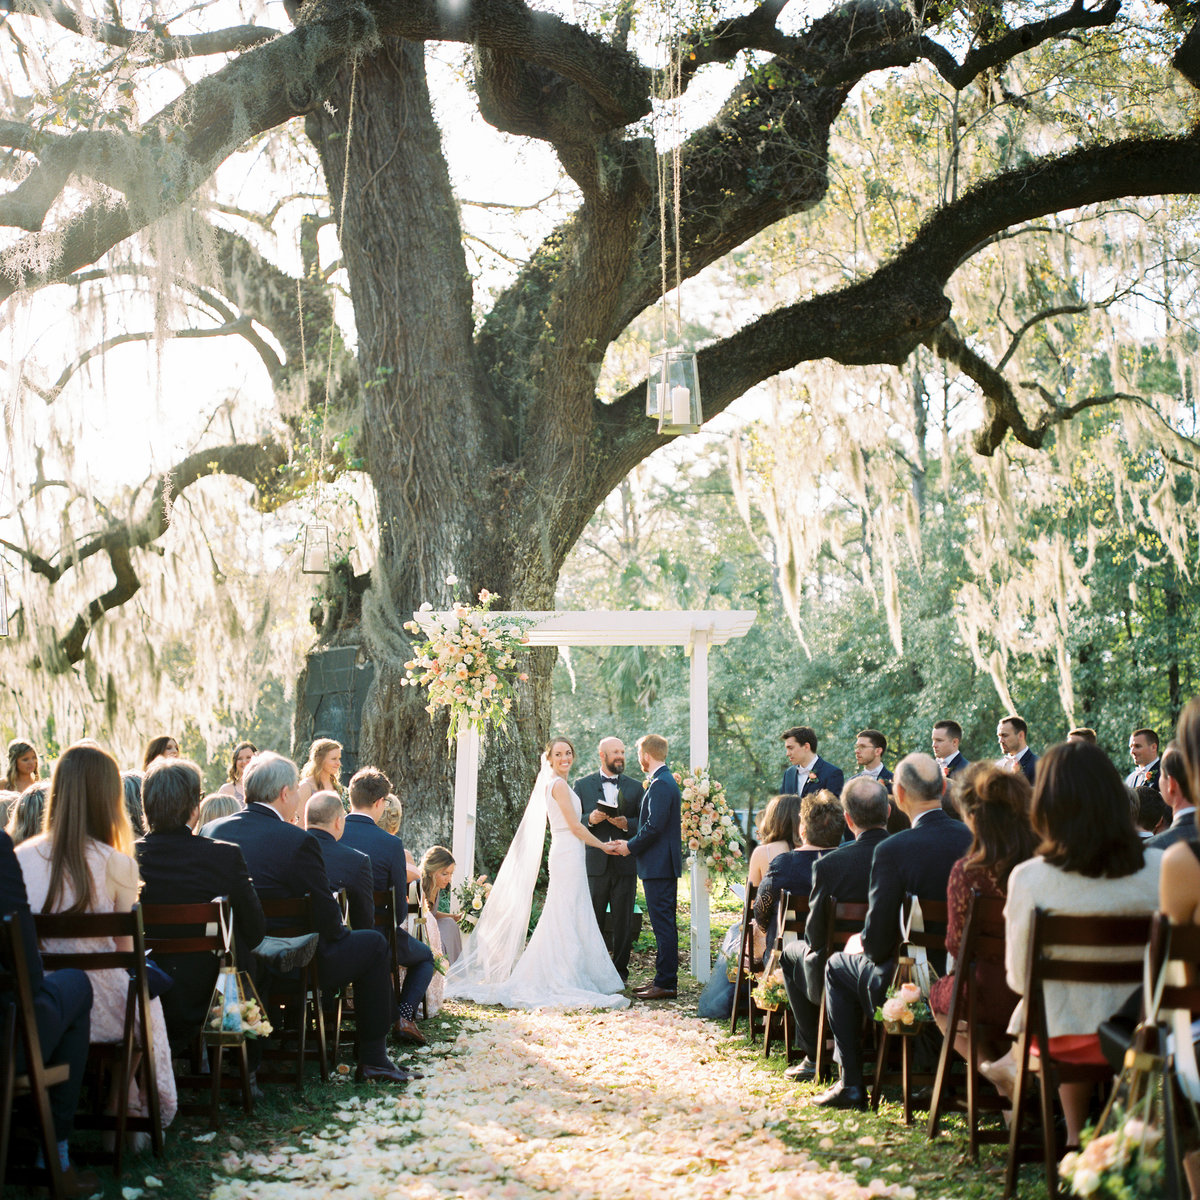 charleston-wedding-venues-magnolia-plantation-philip-casey-photography-038